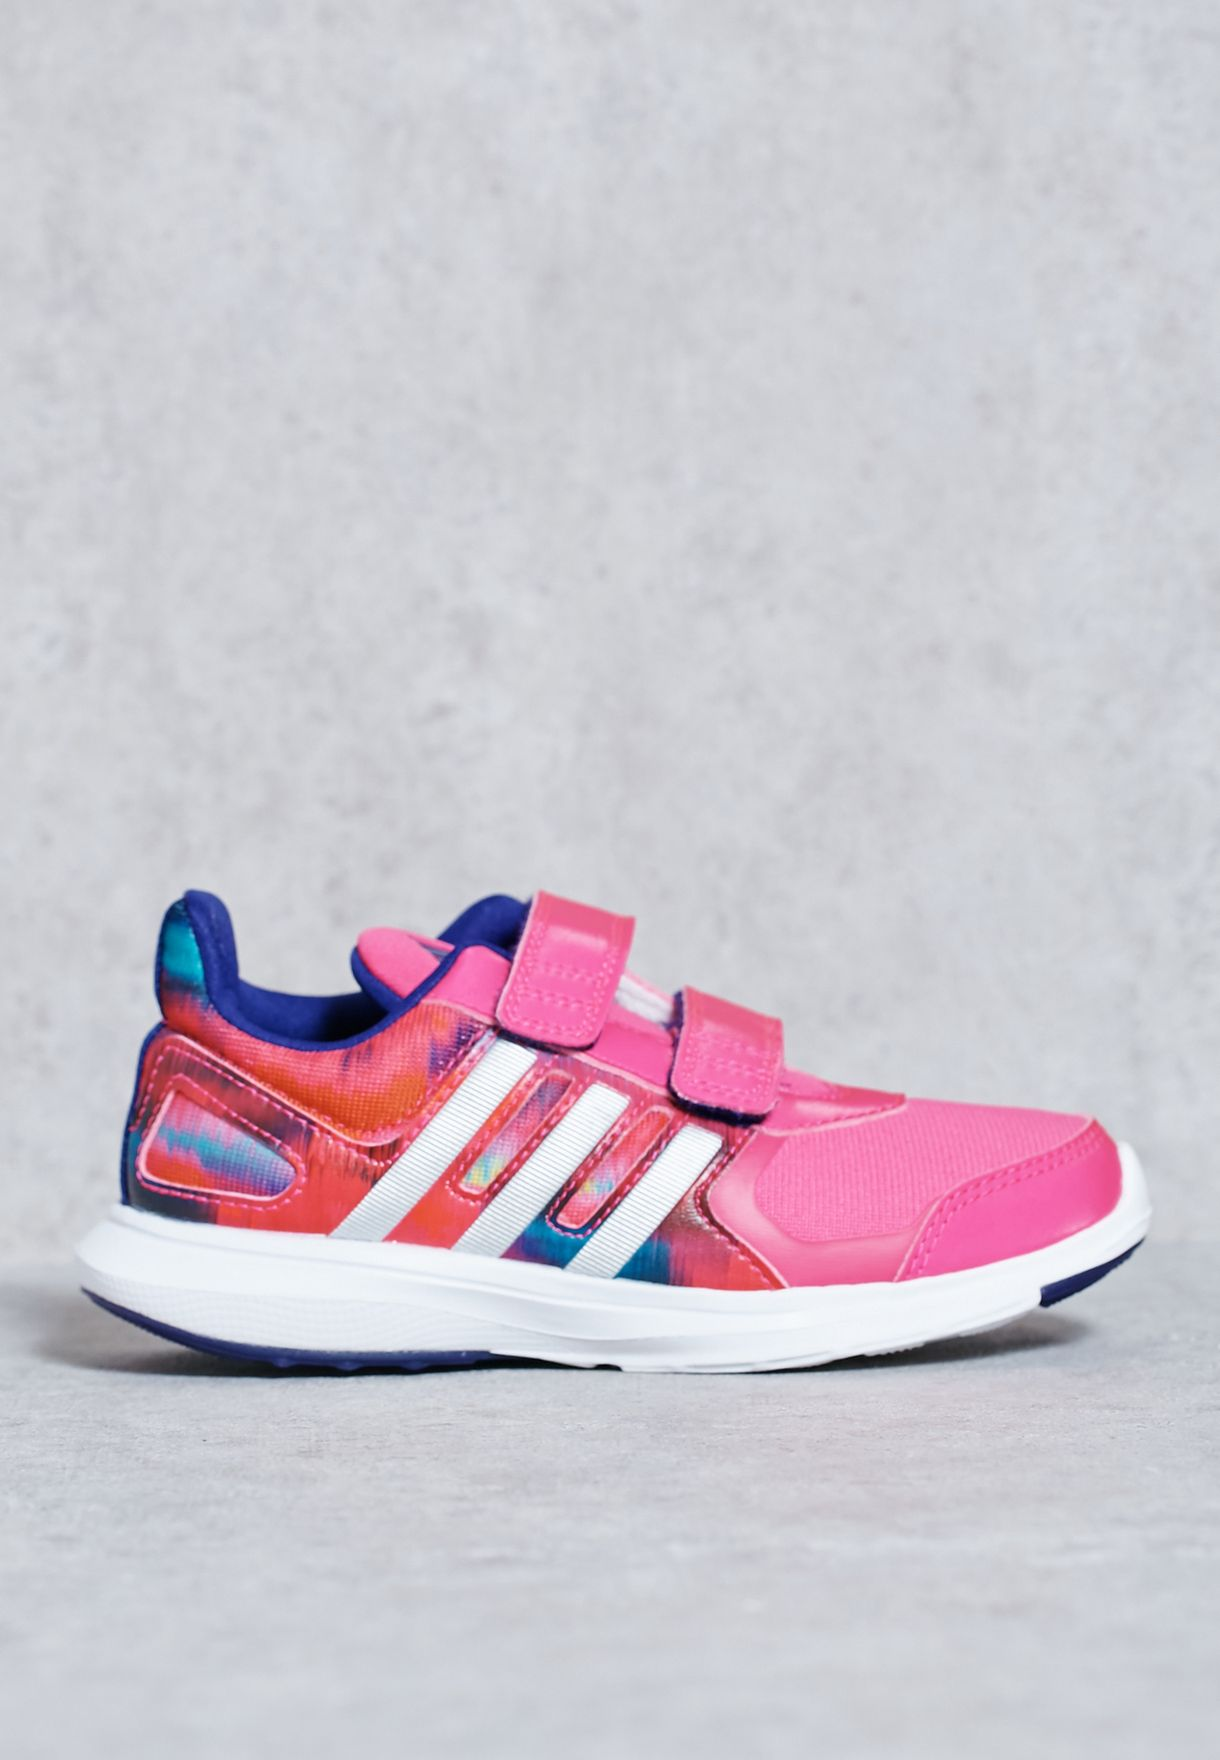 Kids For Pink Adidas Shop Oman 2 0 Hyperfast Aq3872 In xwvT5X0q5U